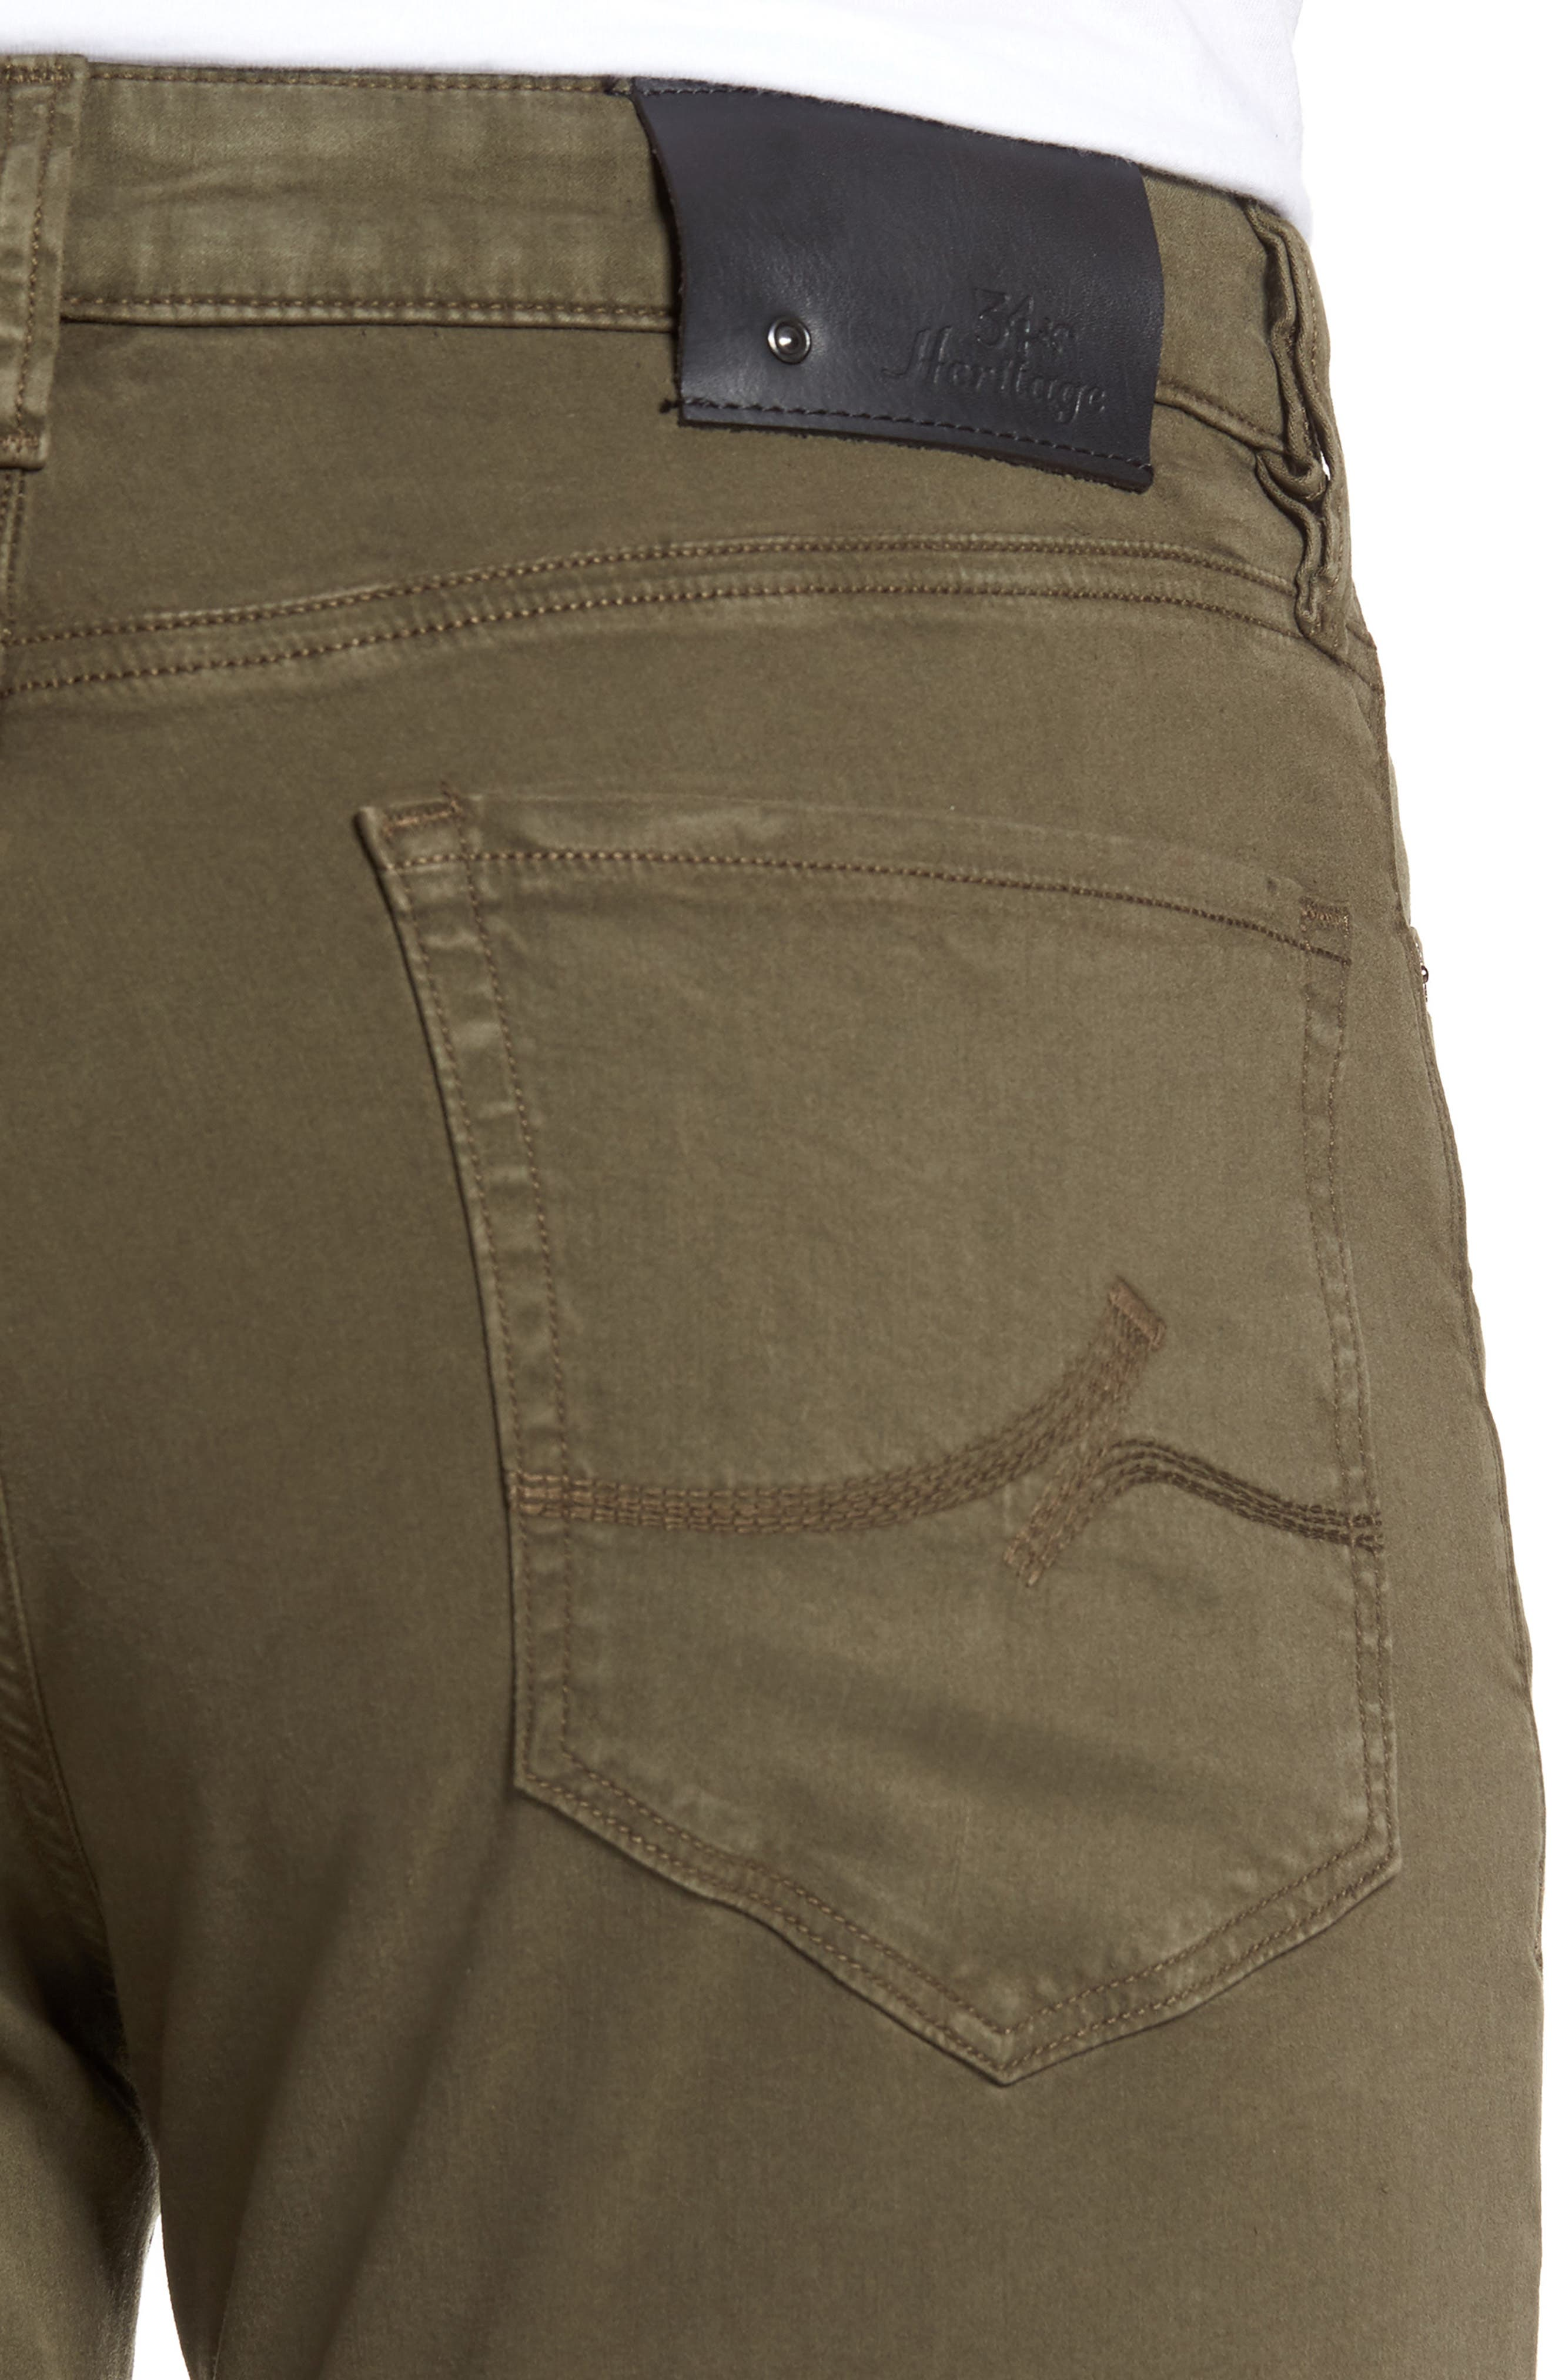 Charisma Relaxed Fit Pants,                             Alternate thumbnail 4, color,                             Olive Twill